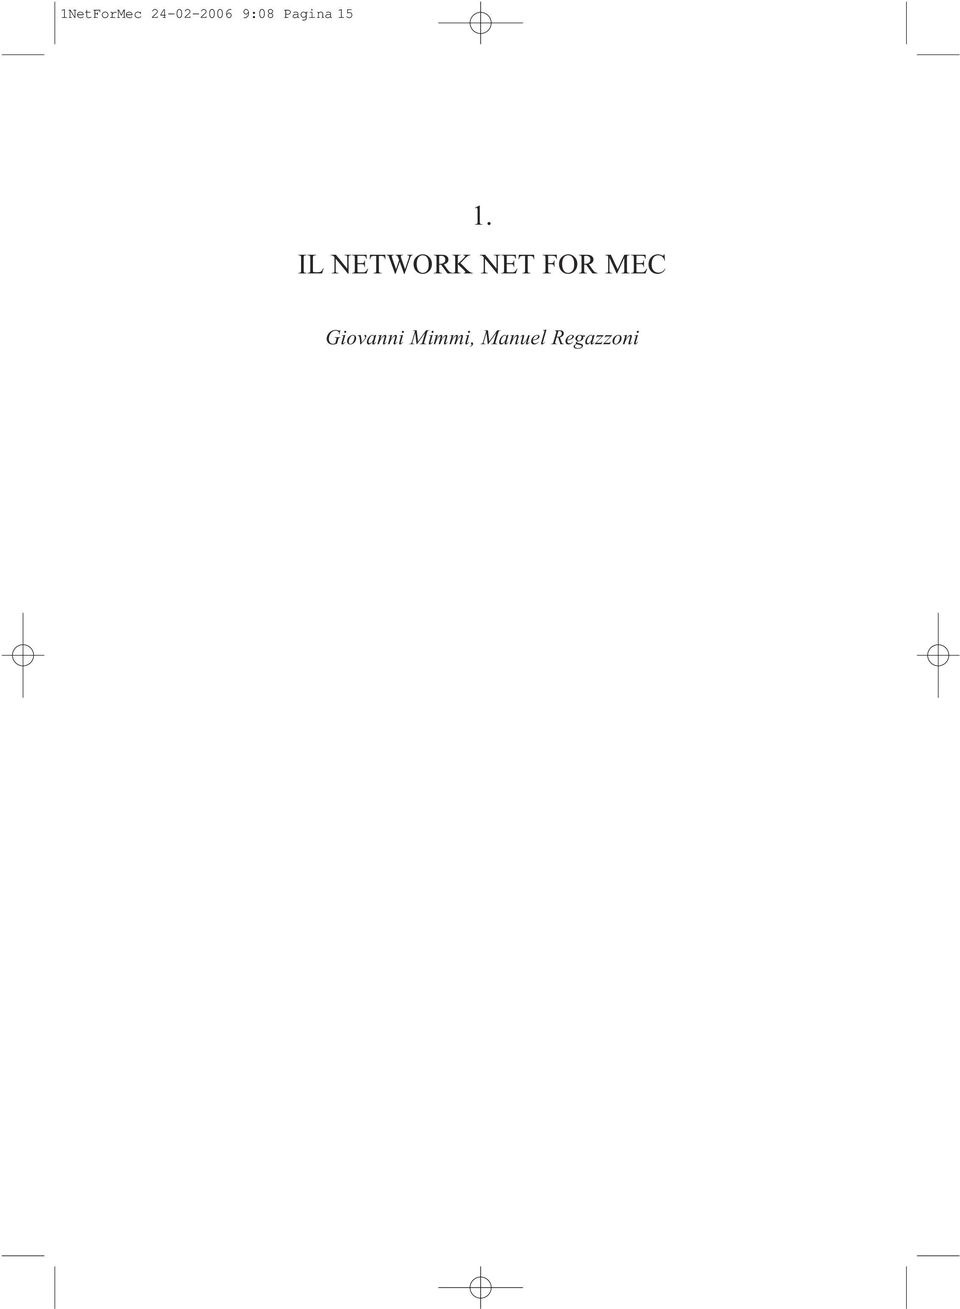 IL NETWORK NET FOR MEC